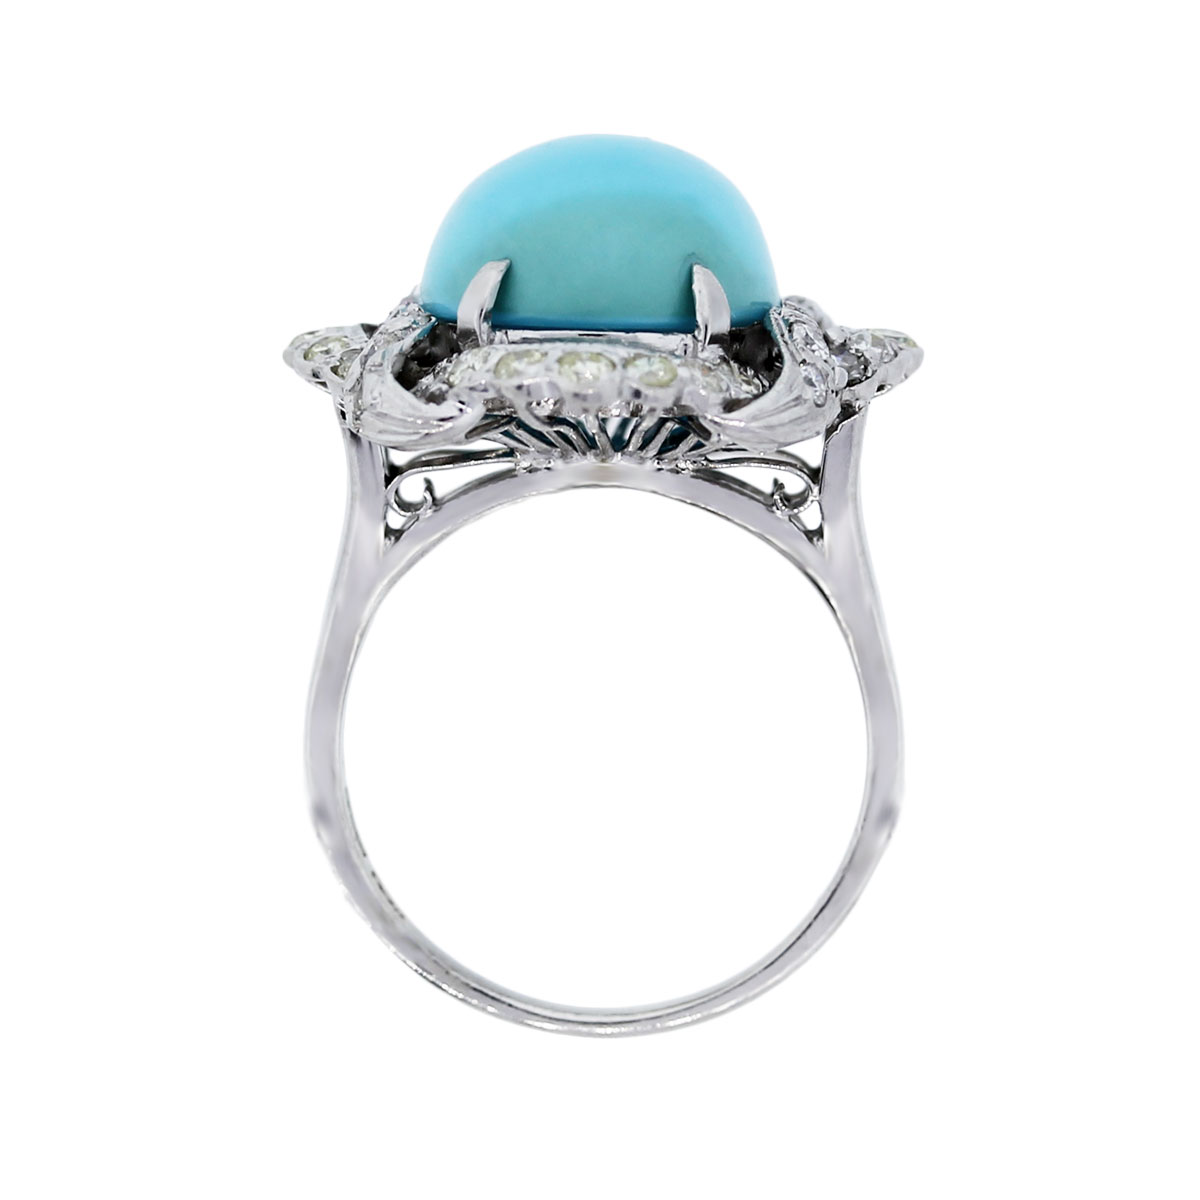 White Gold Turquoise and Diamond Cocktail Ring